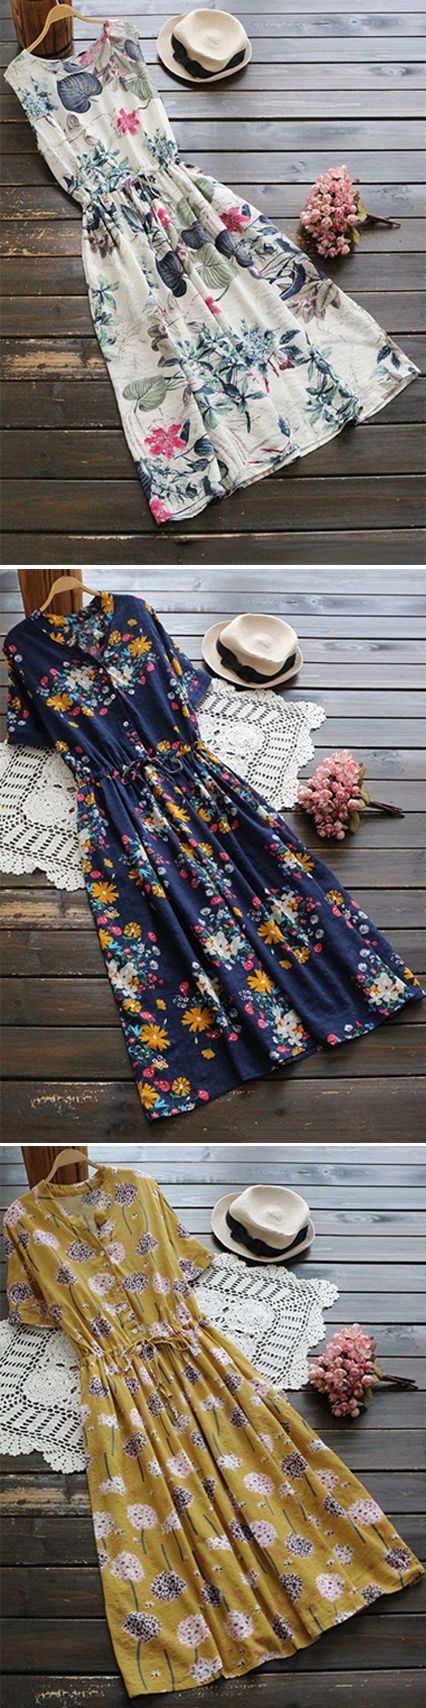 Summer dresses:Maxi dresses,Bohemian dresses,Long sleeve dresses,Casual dresses,Off the shoulder dresses,Prom dresses,Cocktail dresses,Wedding dresses,Midi dresses,Mini dresses,to find different dress(dresses) ideas @zaful Extra 10% OFF Code:ZF2017